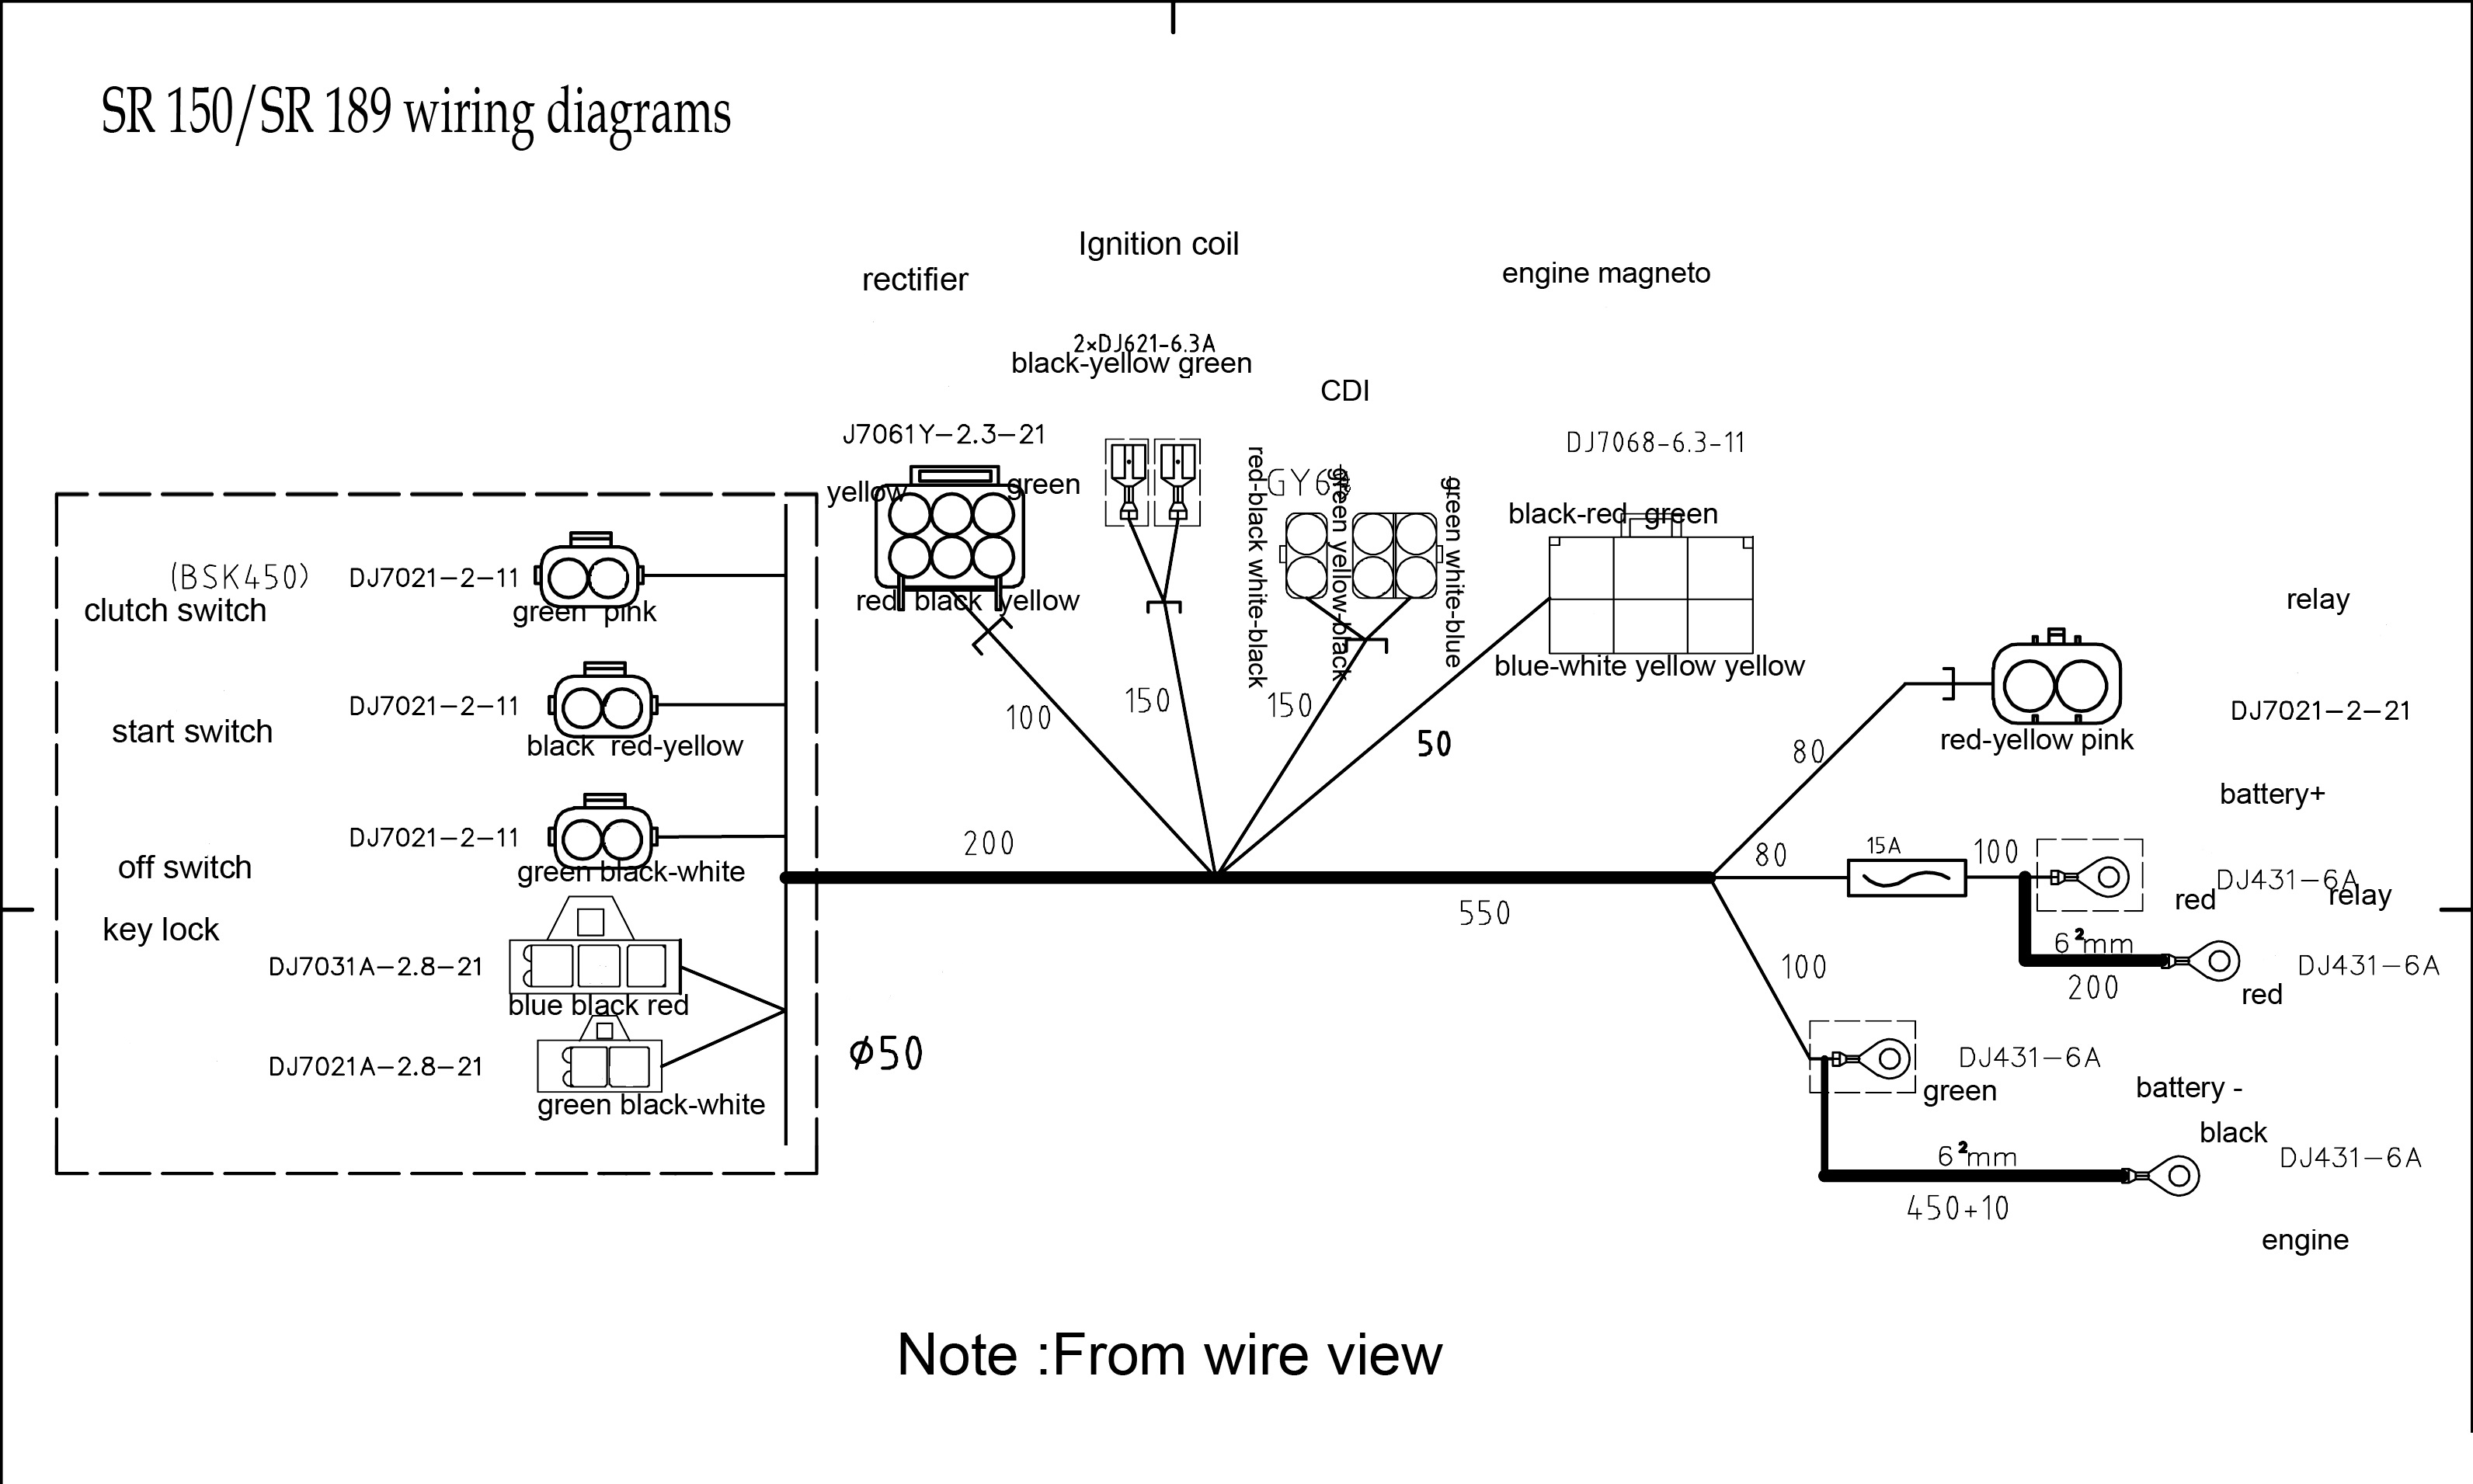 SR150_189_Wiring_Diagram wire diagram lifan 125cc engine wiring diagram at crackthecode.co